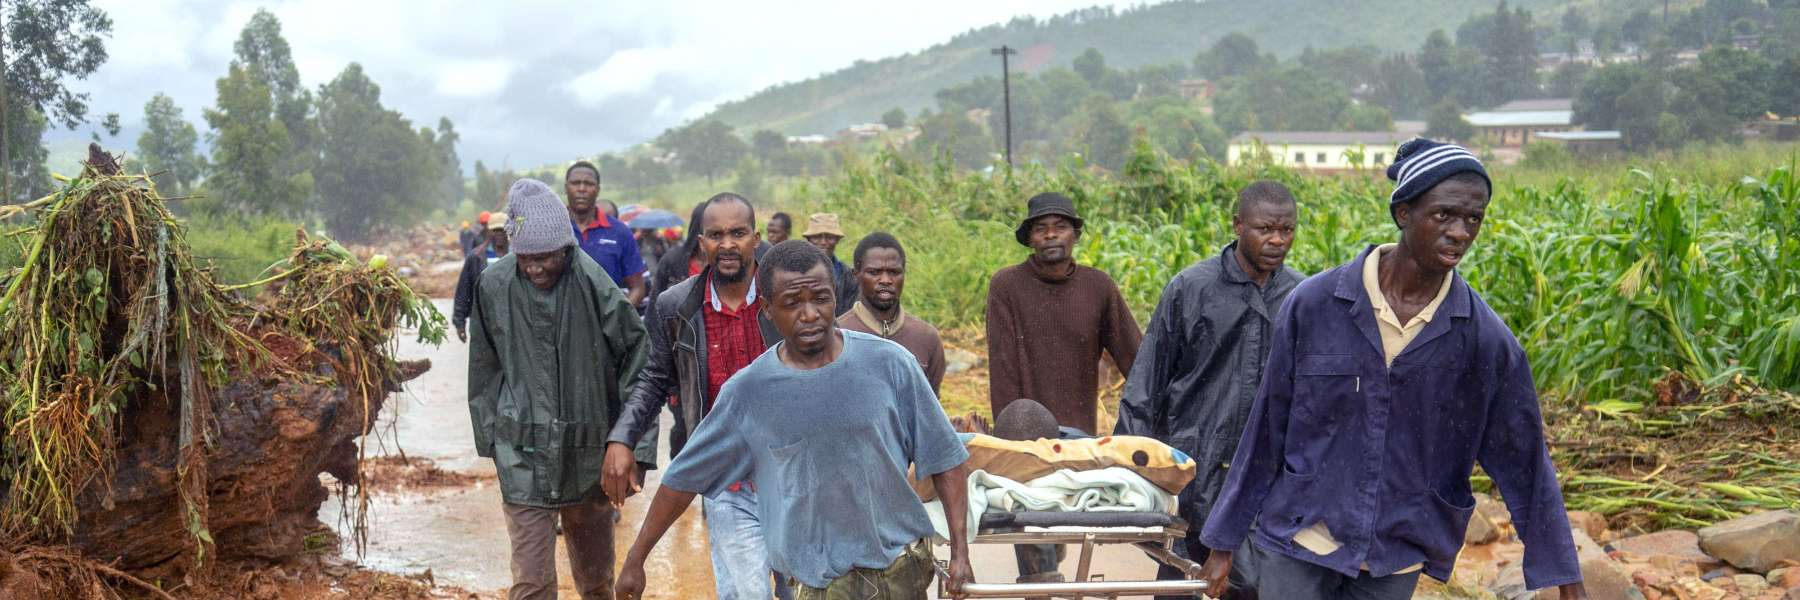 Group carrying injured person on stretcher following Cyclone Idai